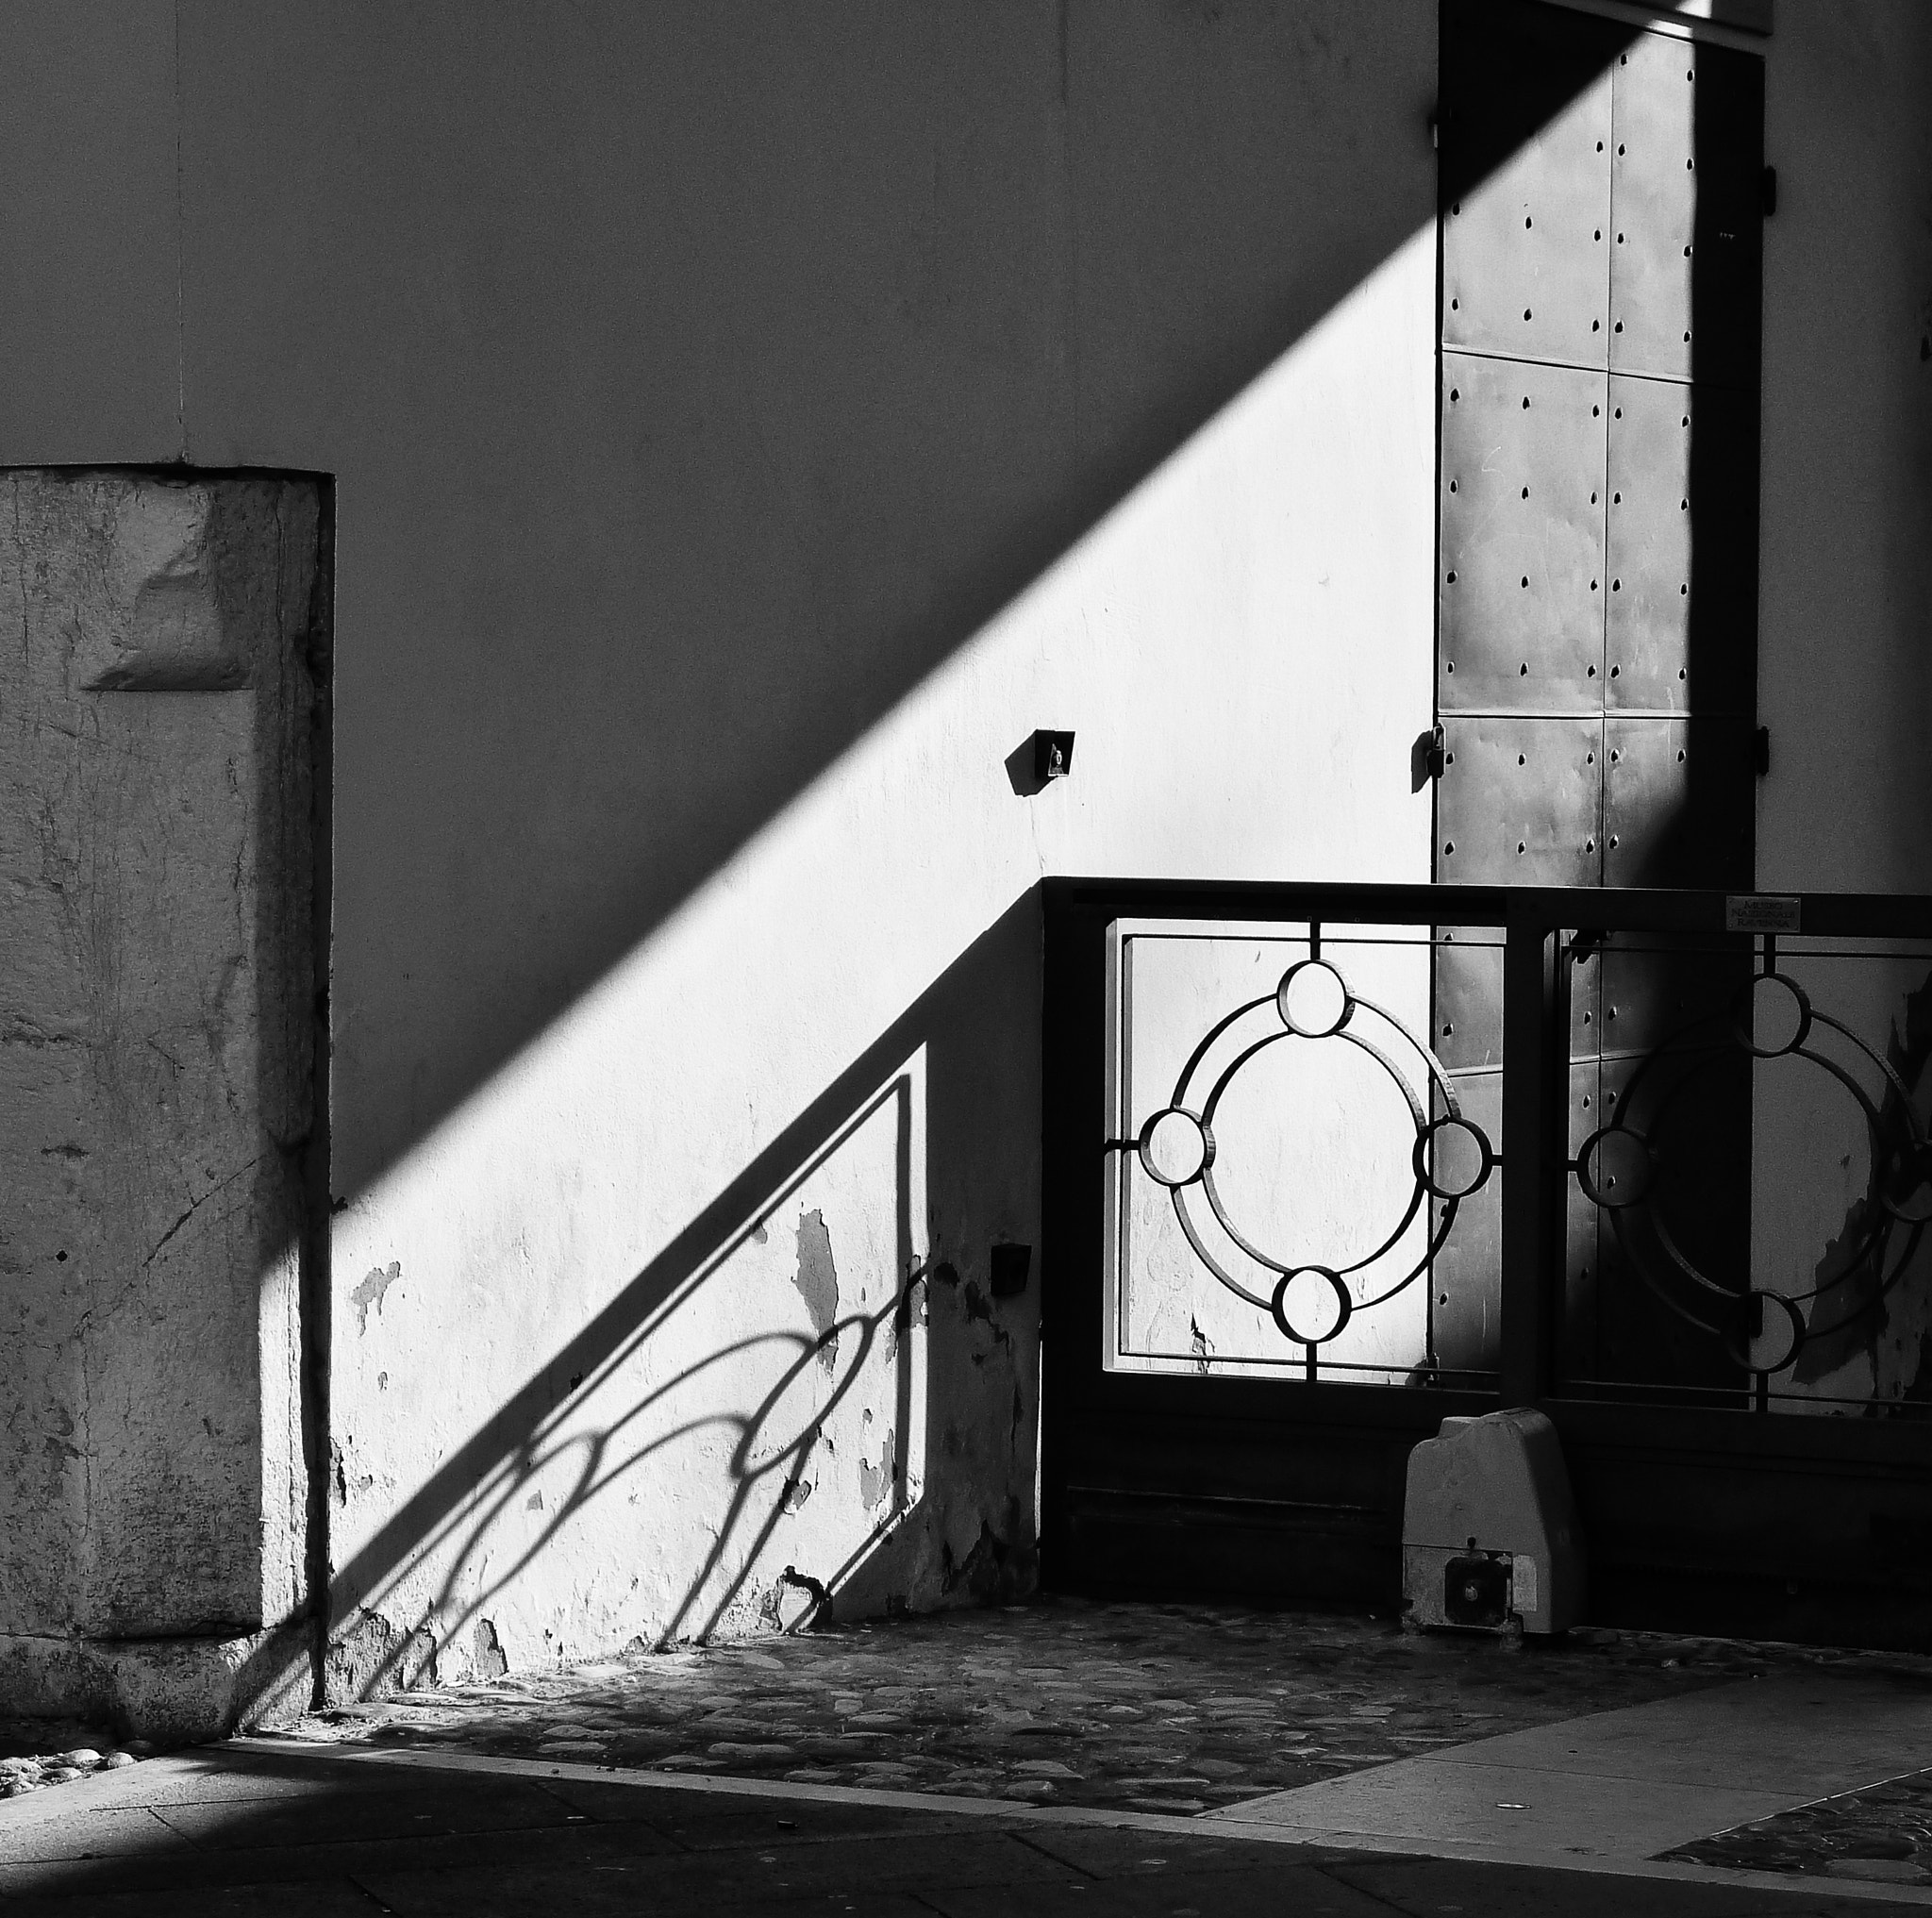 Photograph It's just a shadow by Laura Tositti on 500px